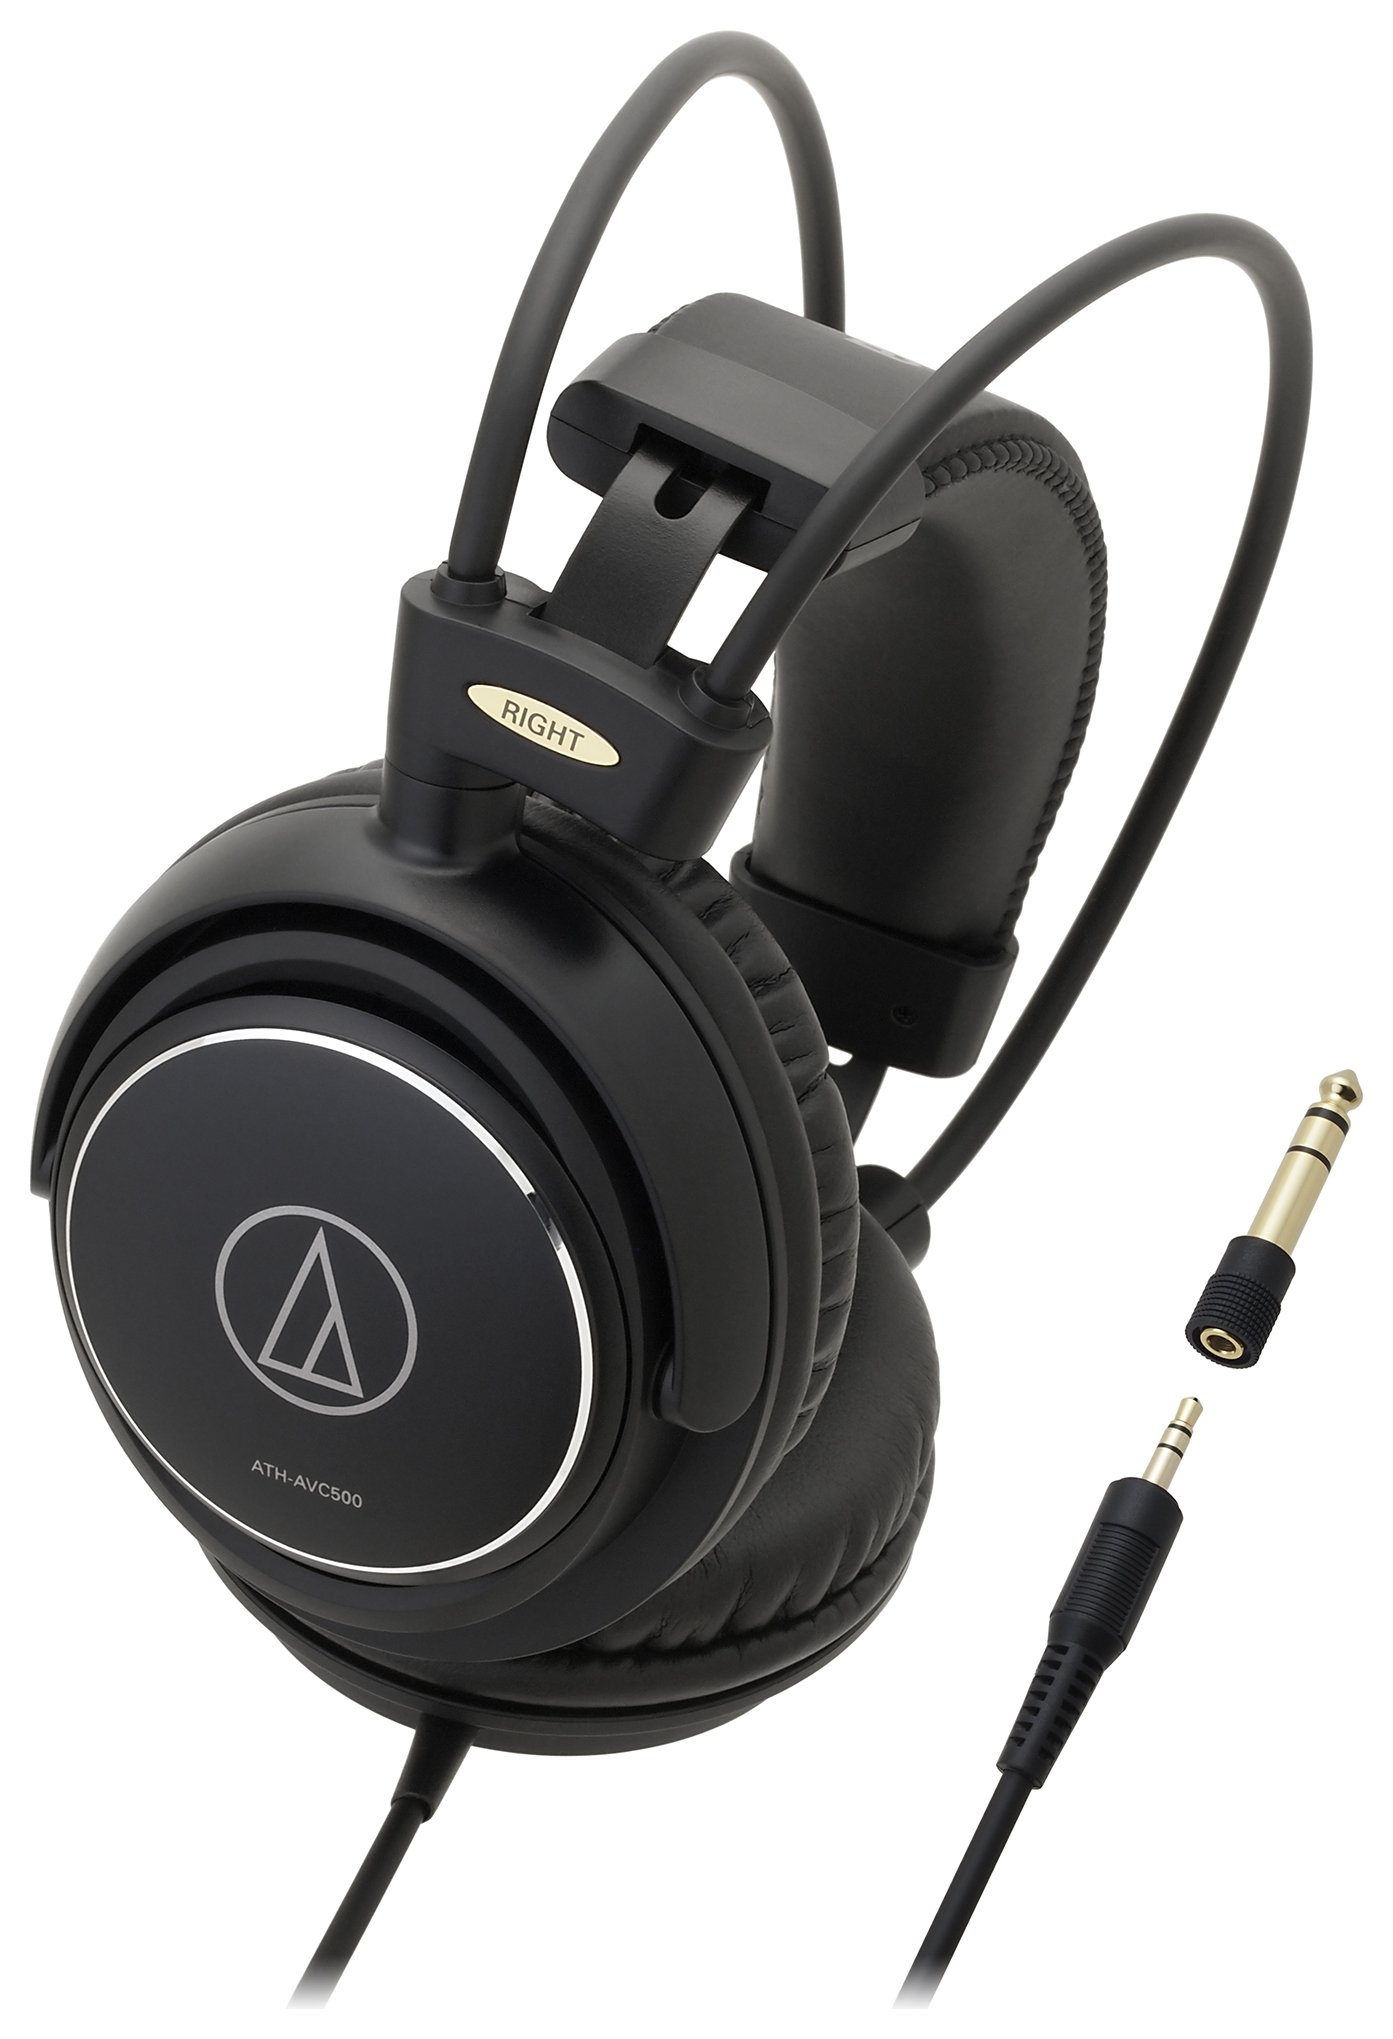 Image of Audio Technica ATH-AVC500 Over-Ear Headphones - Black.